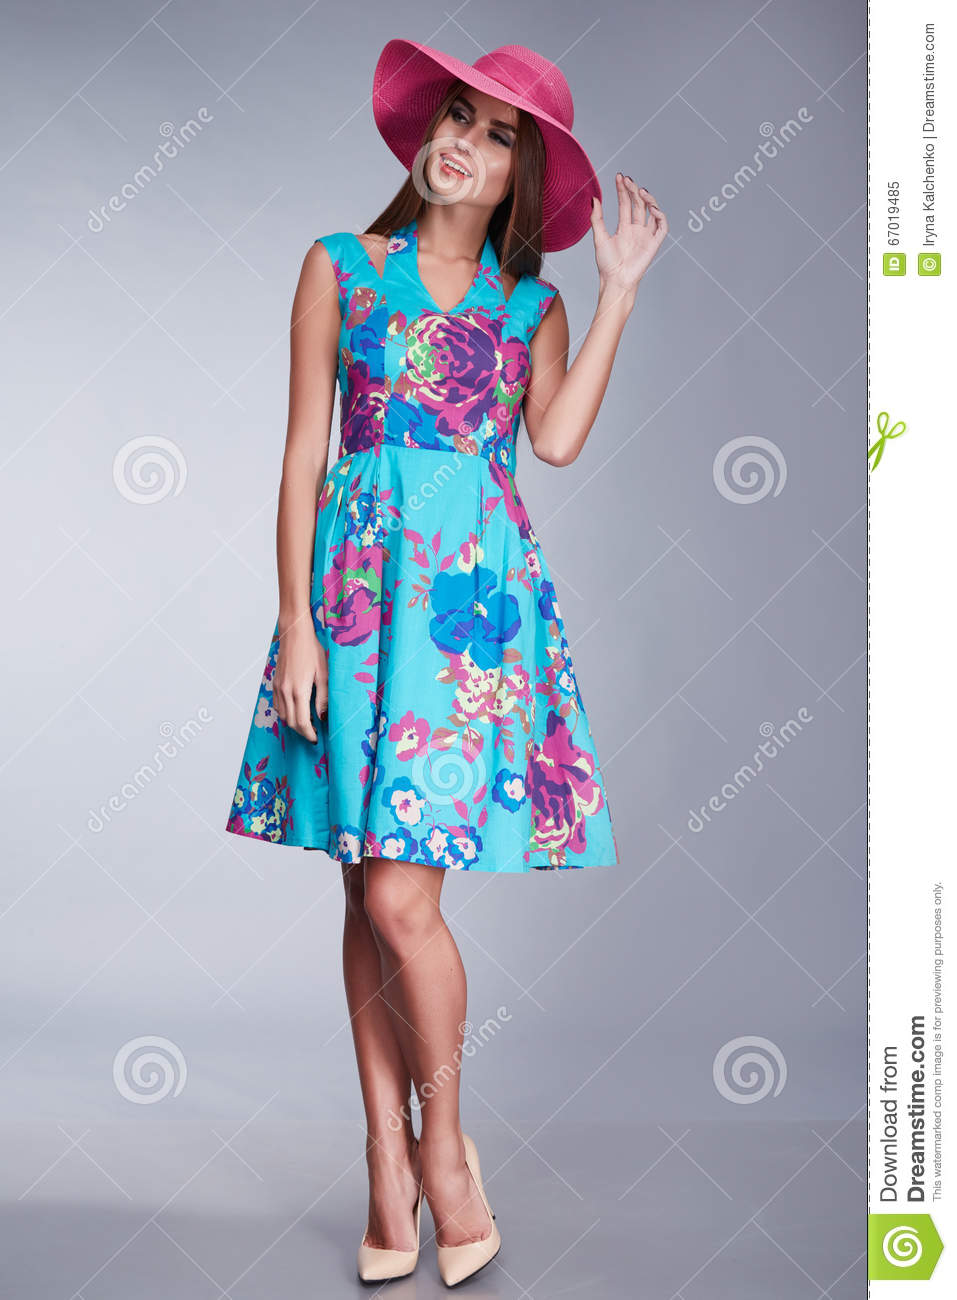 Women Clothing Makeup Catalog Collection Fashion Style Stock Photo Image 67019485